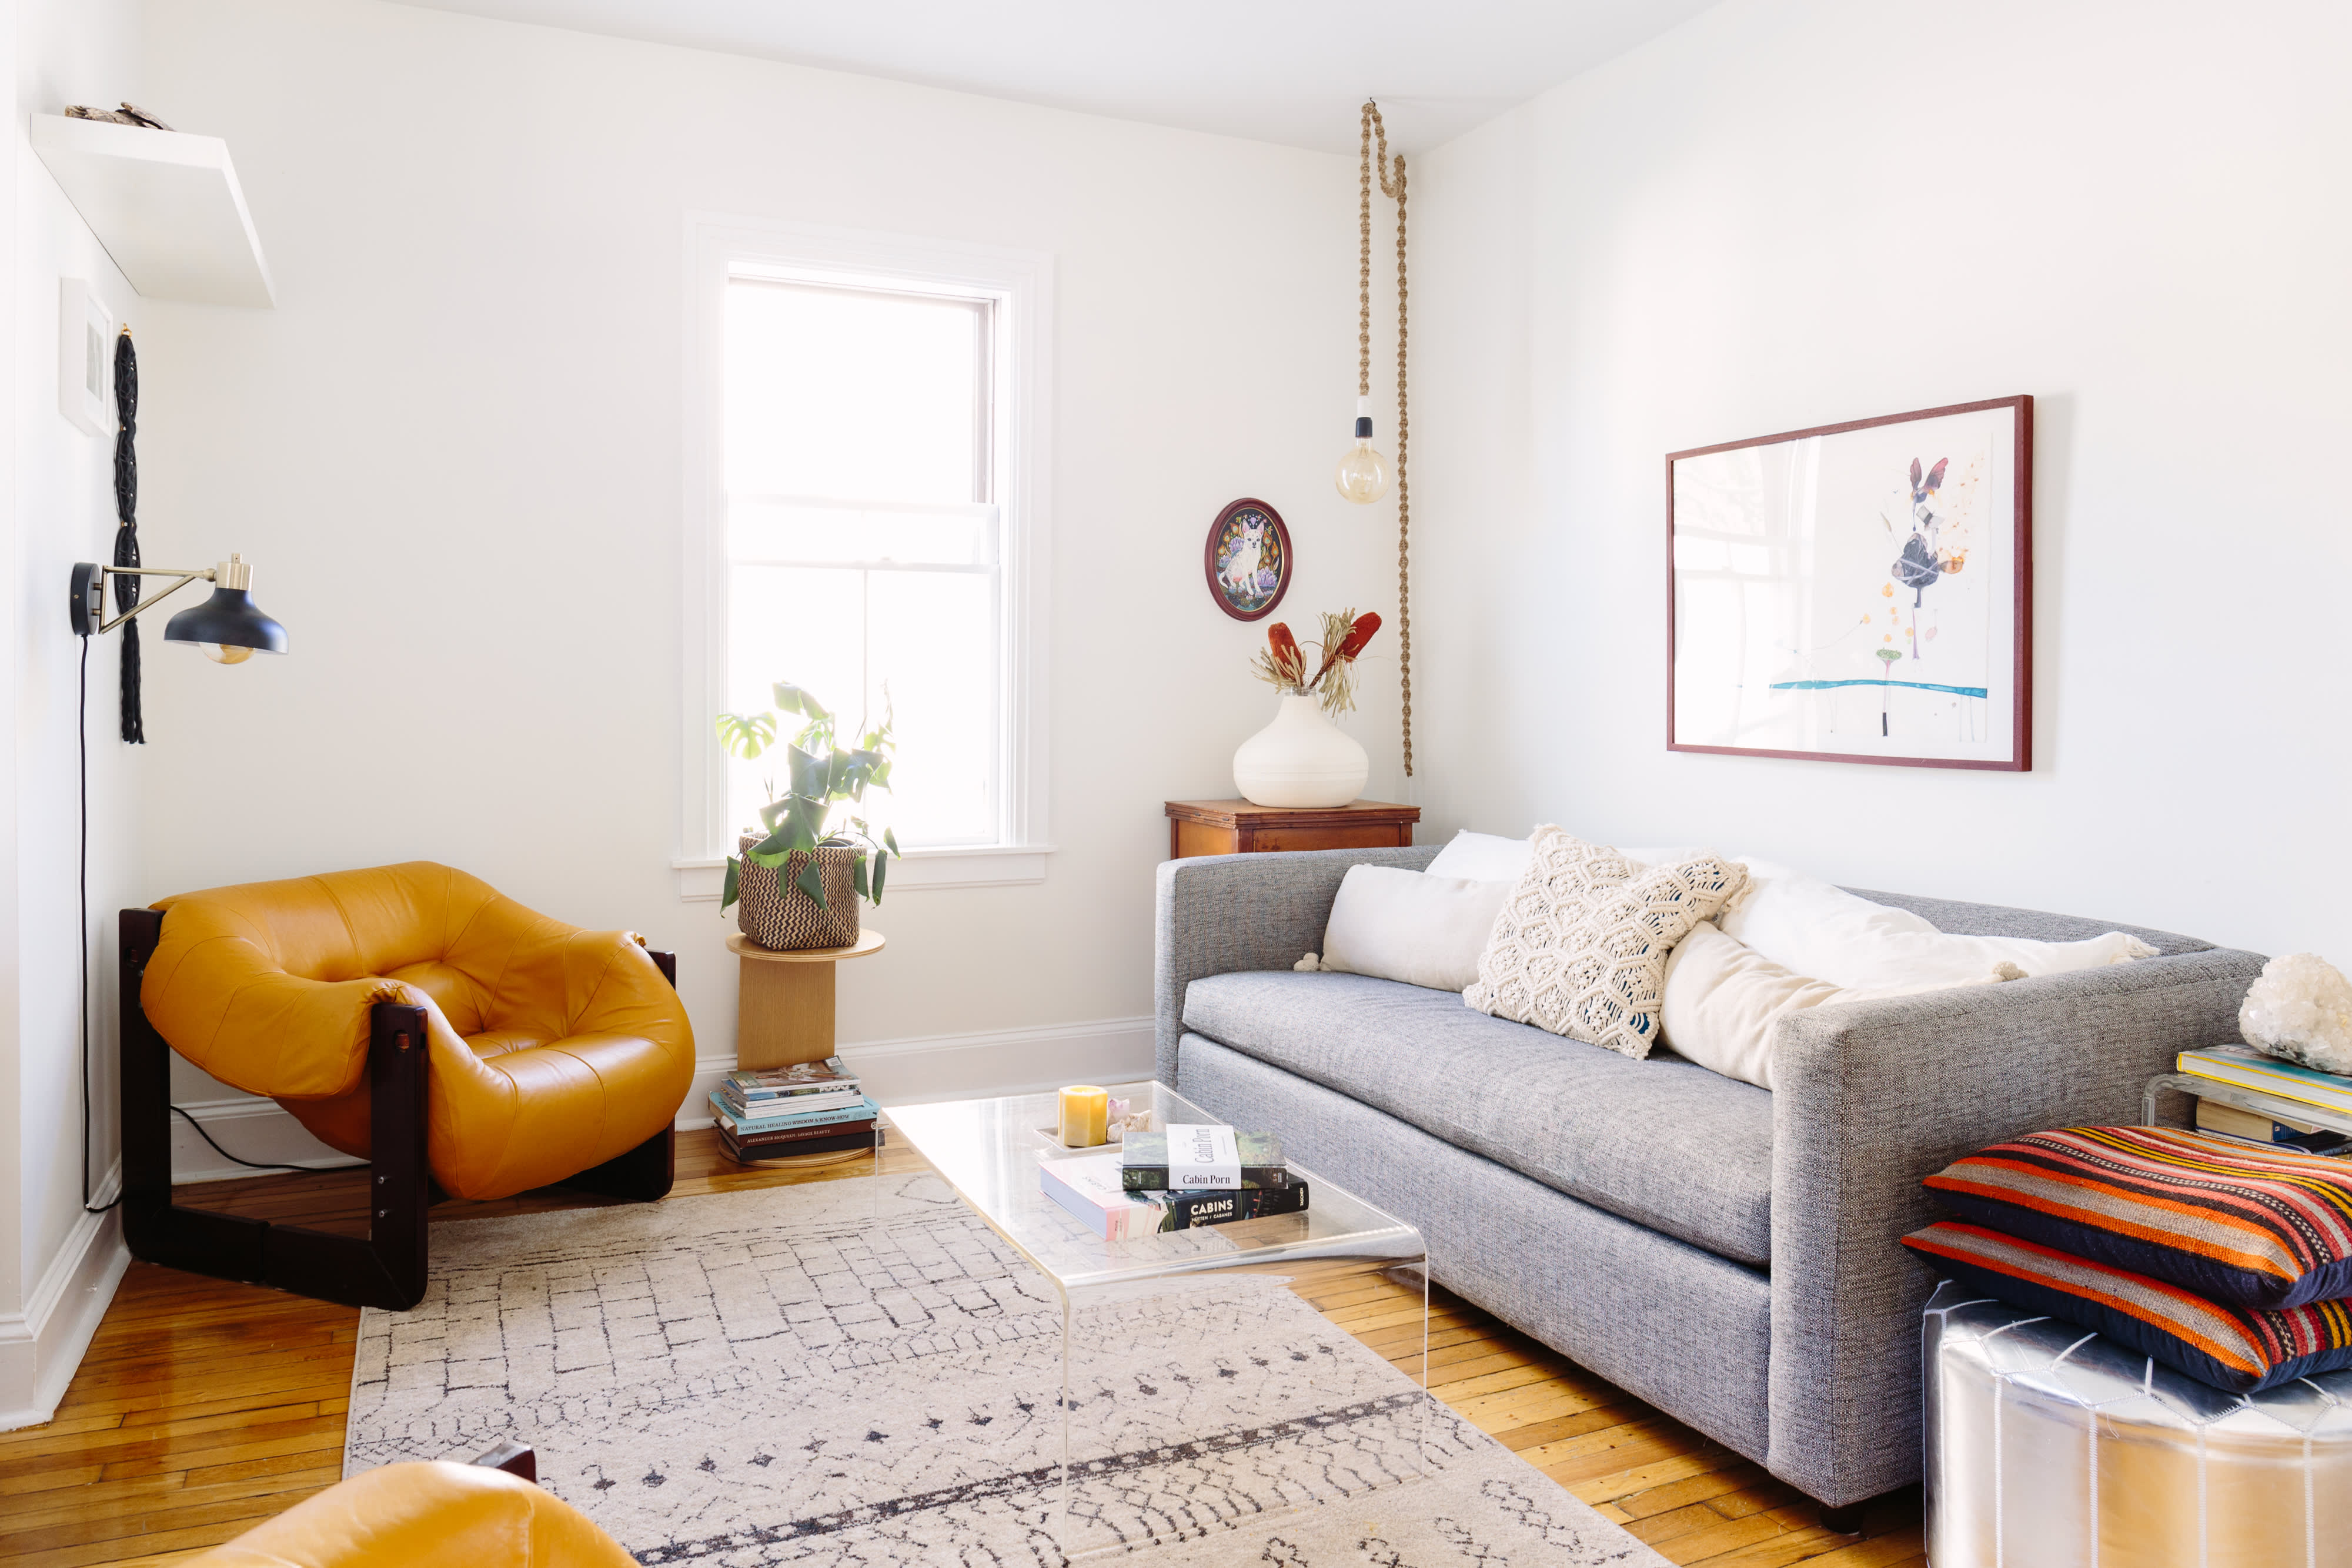 7 Unexpected Places To Buy Home Decor